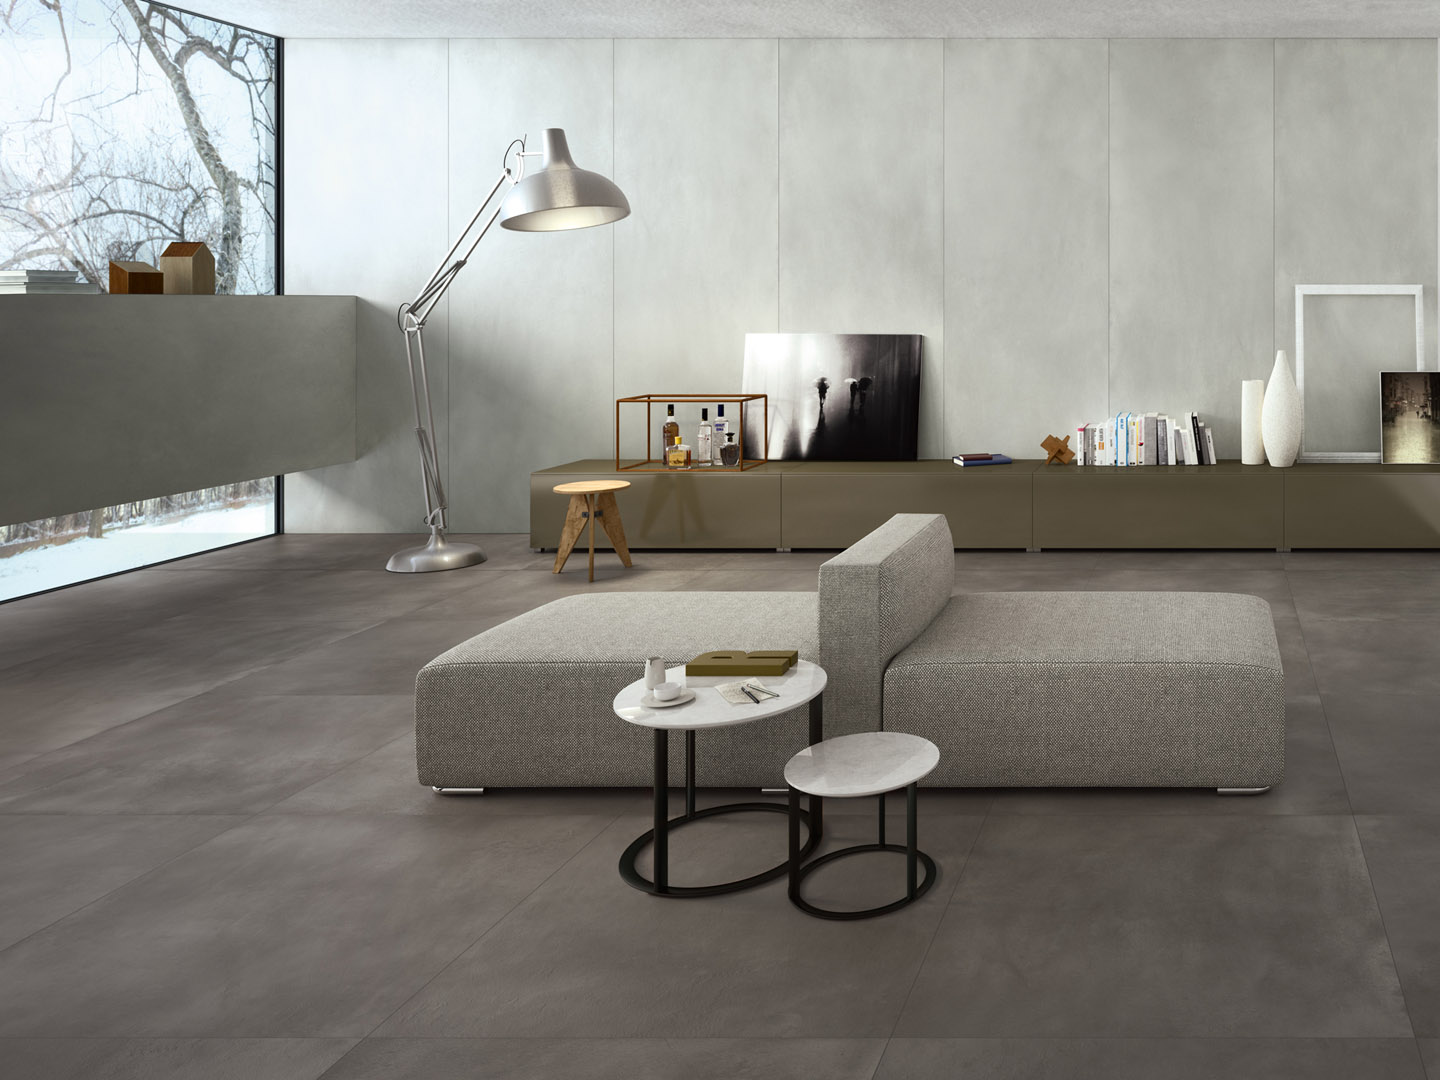 porcelain tile example: Resin Sense range high resolution photo